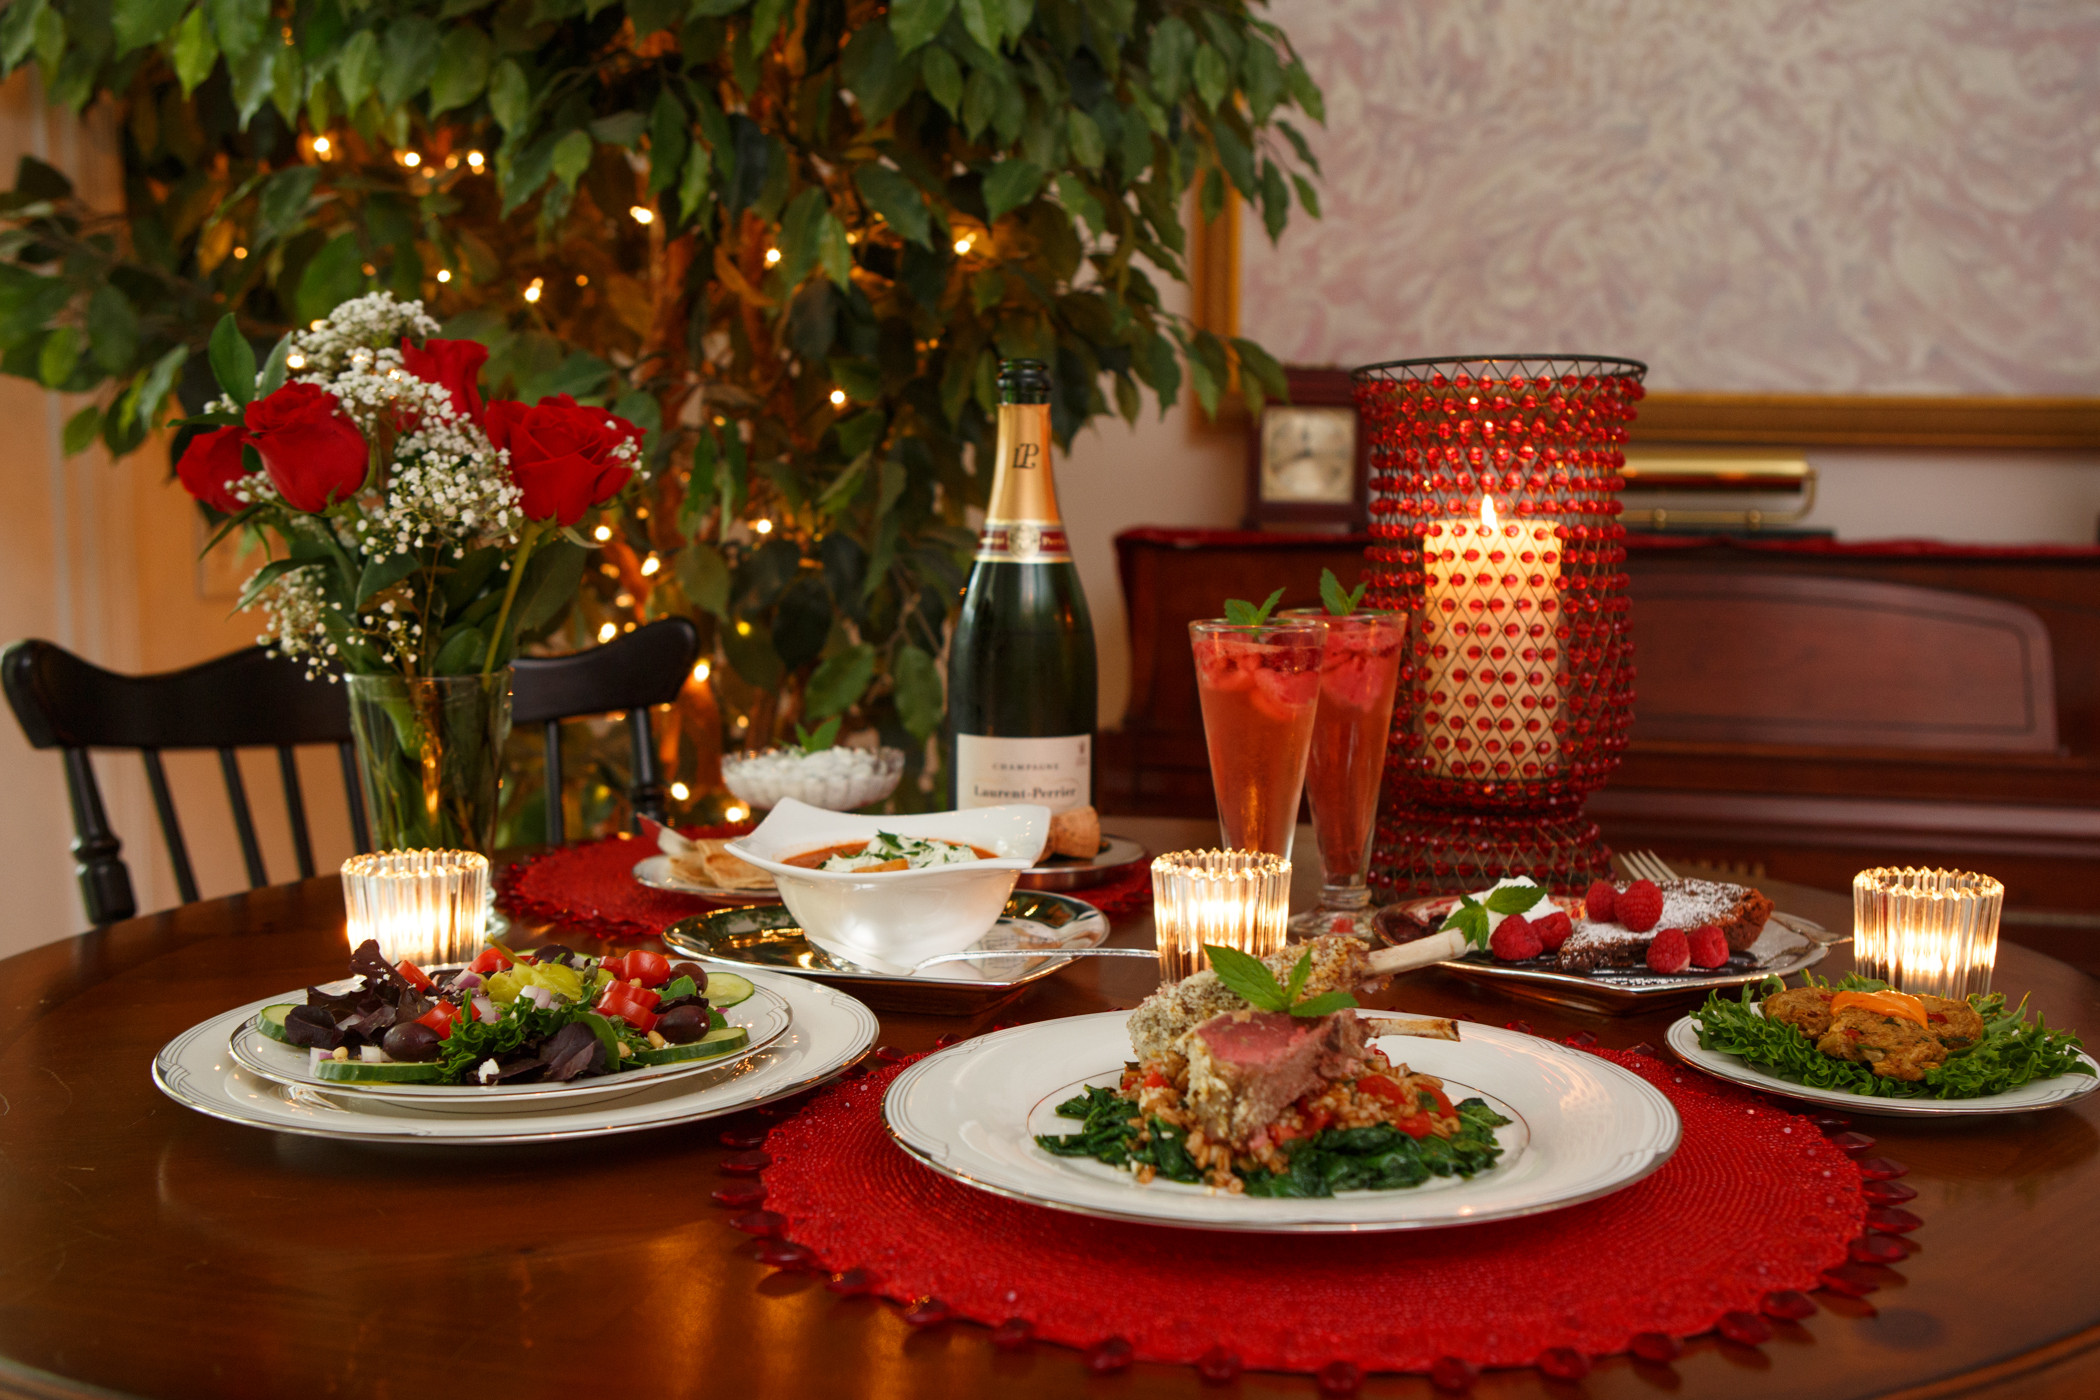 Romantic Dinner For Two  Catering by Debbi CovingtonRomantic Dinner for Two